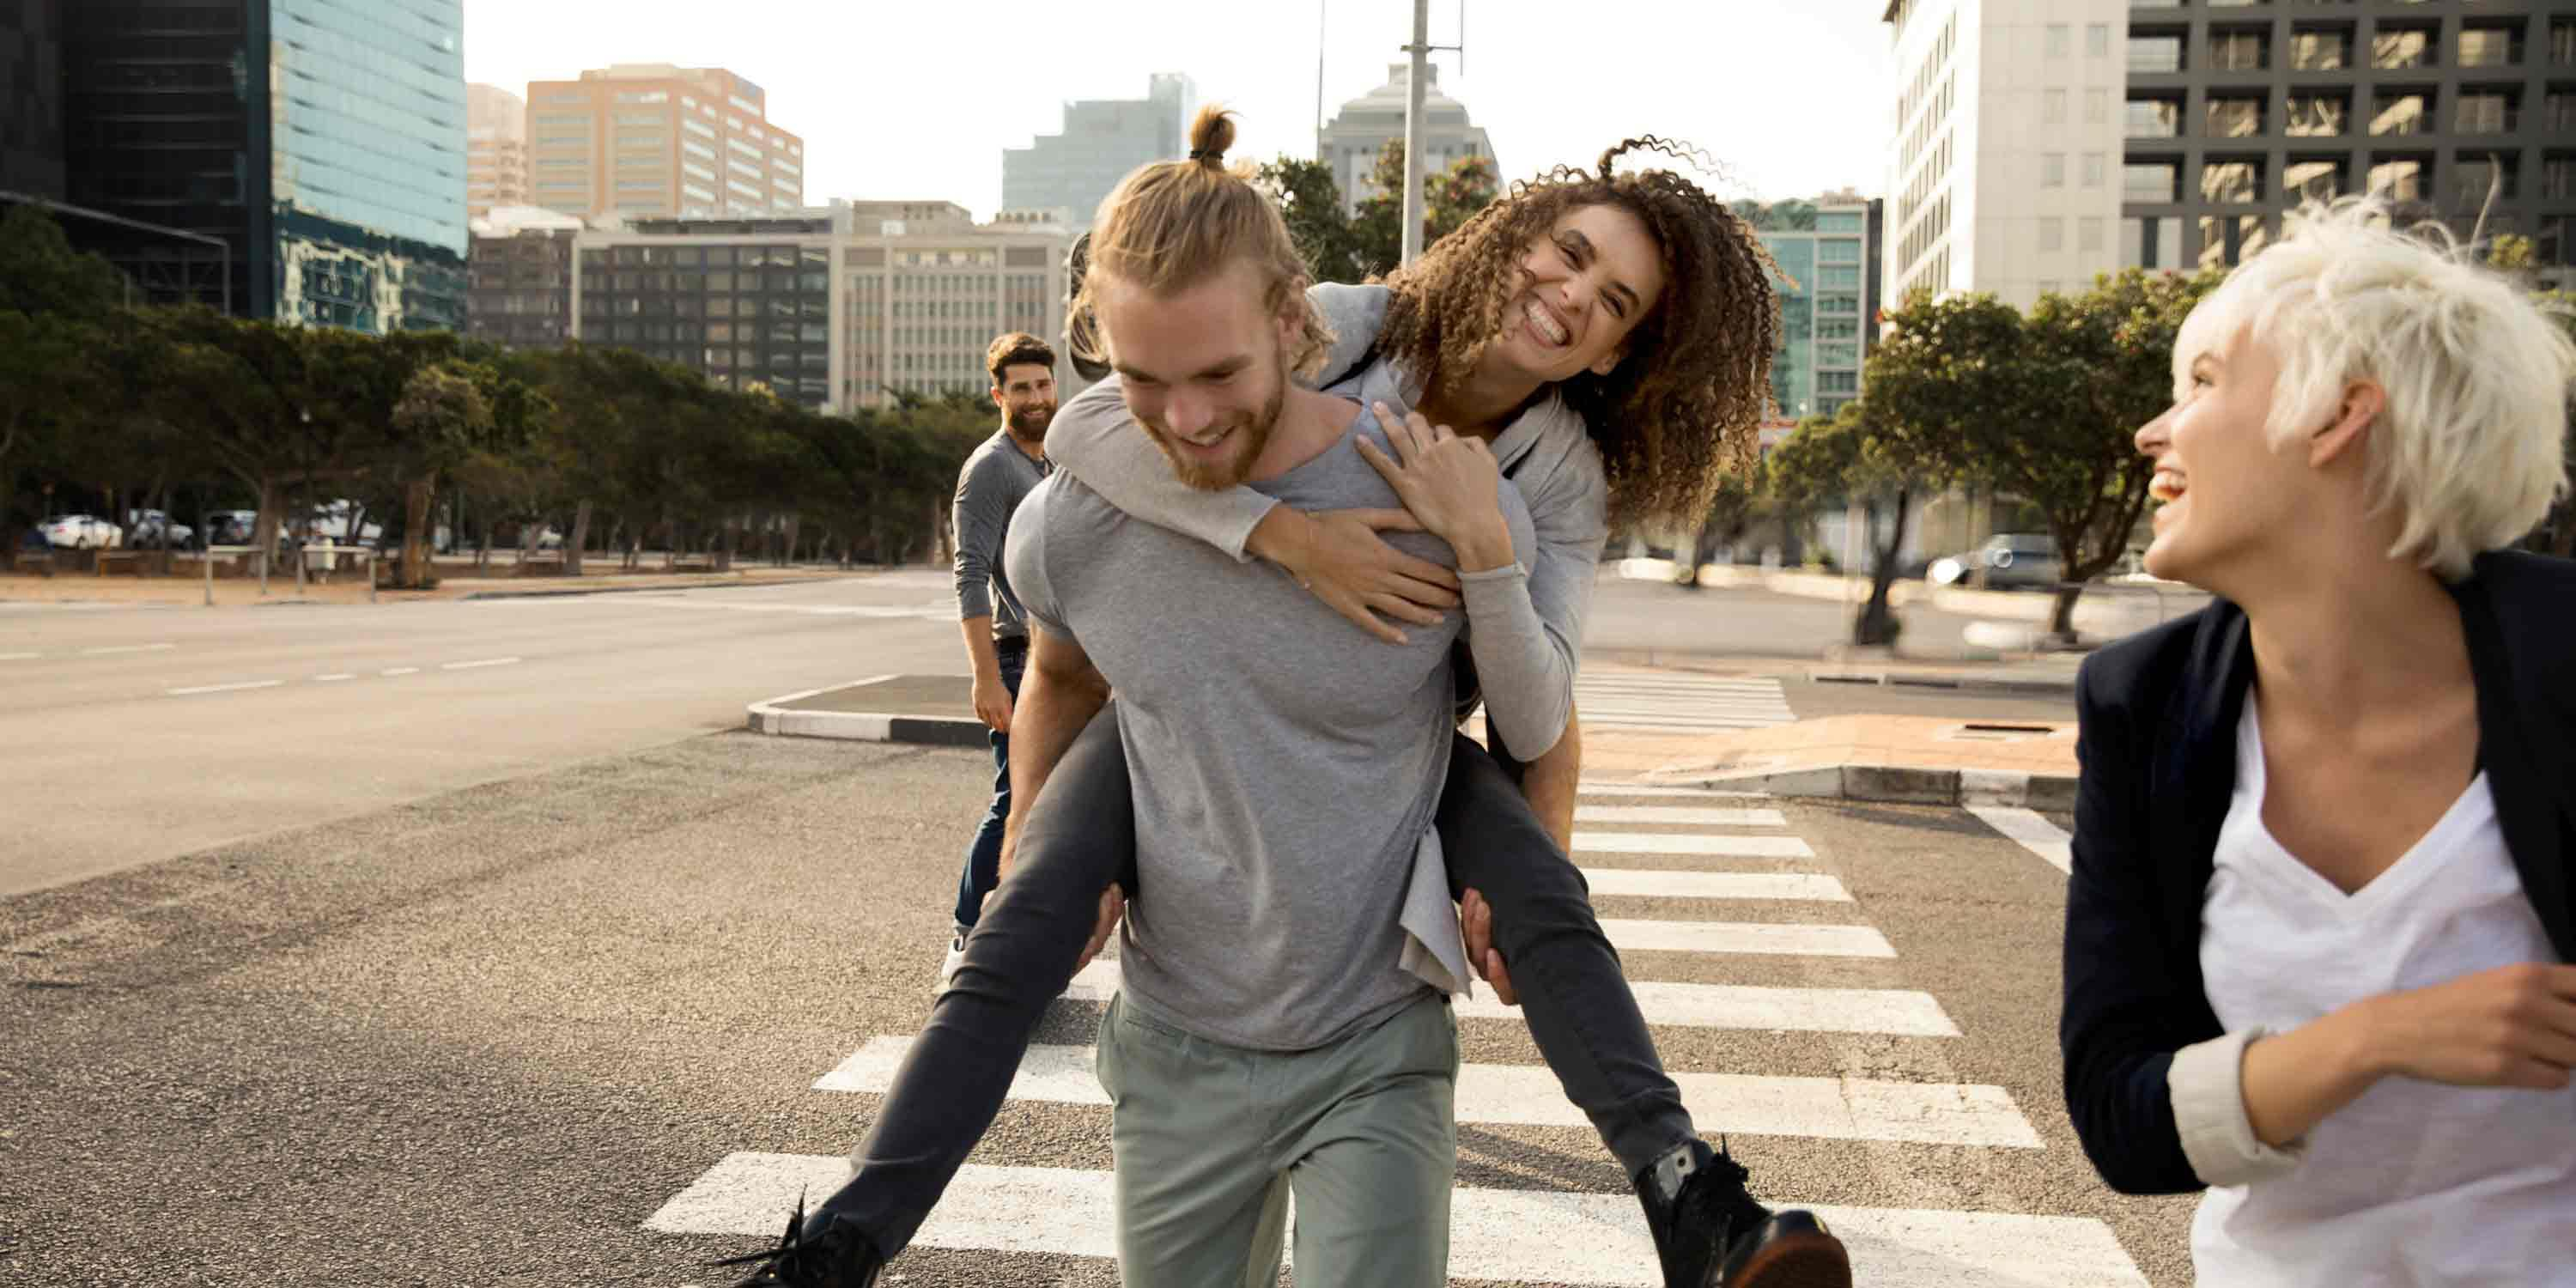 man-carrying-woman-crossing-street